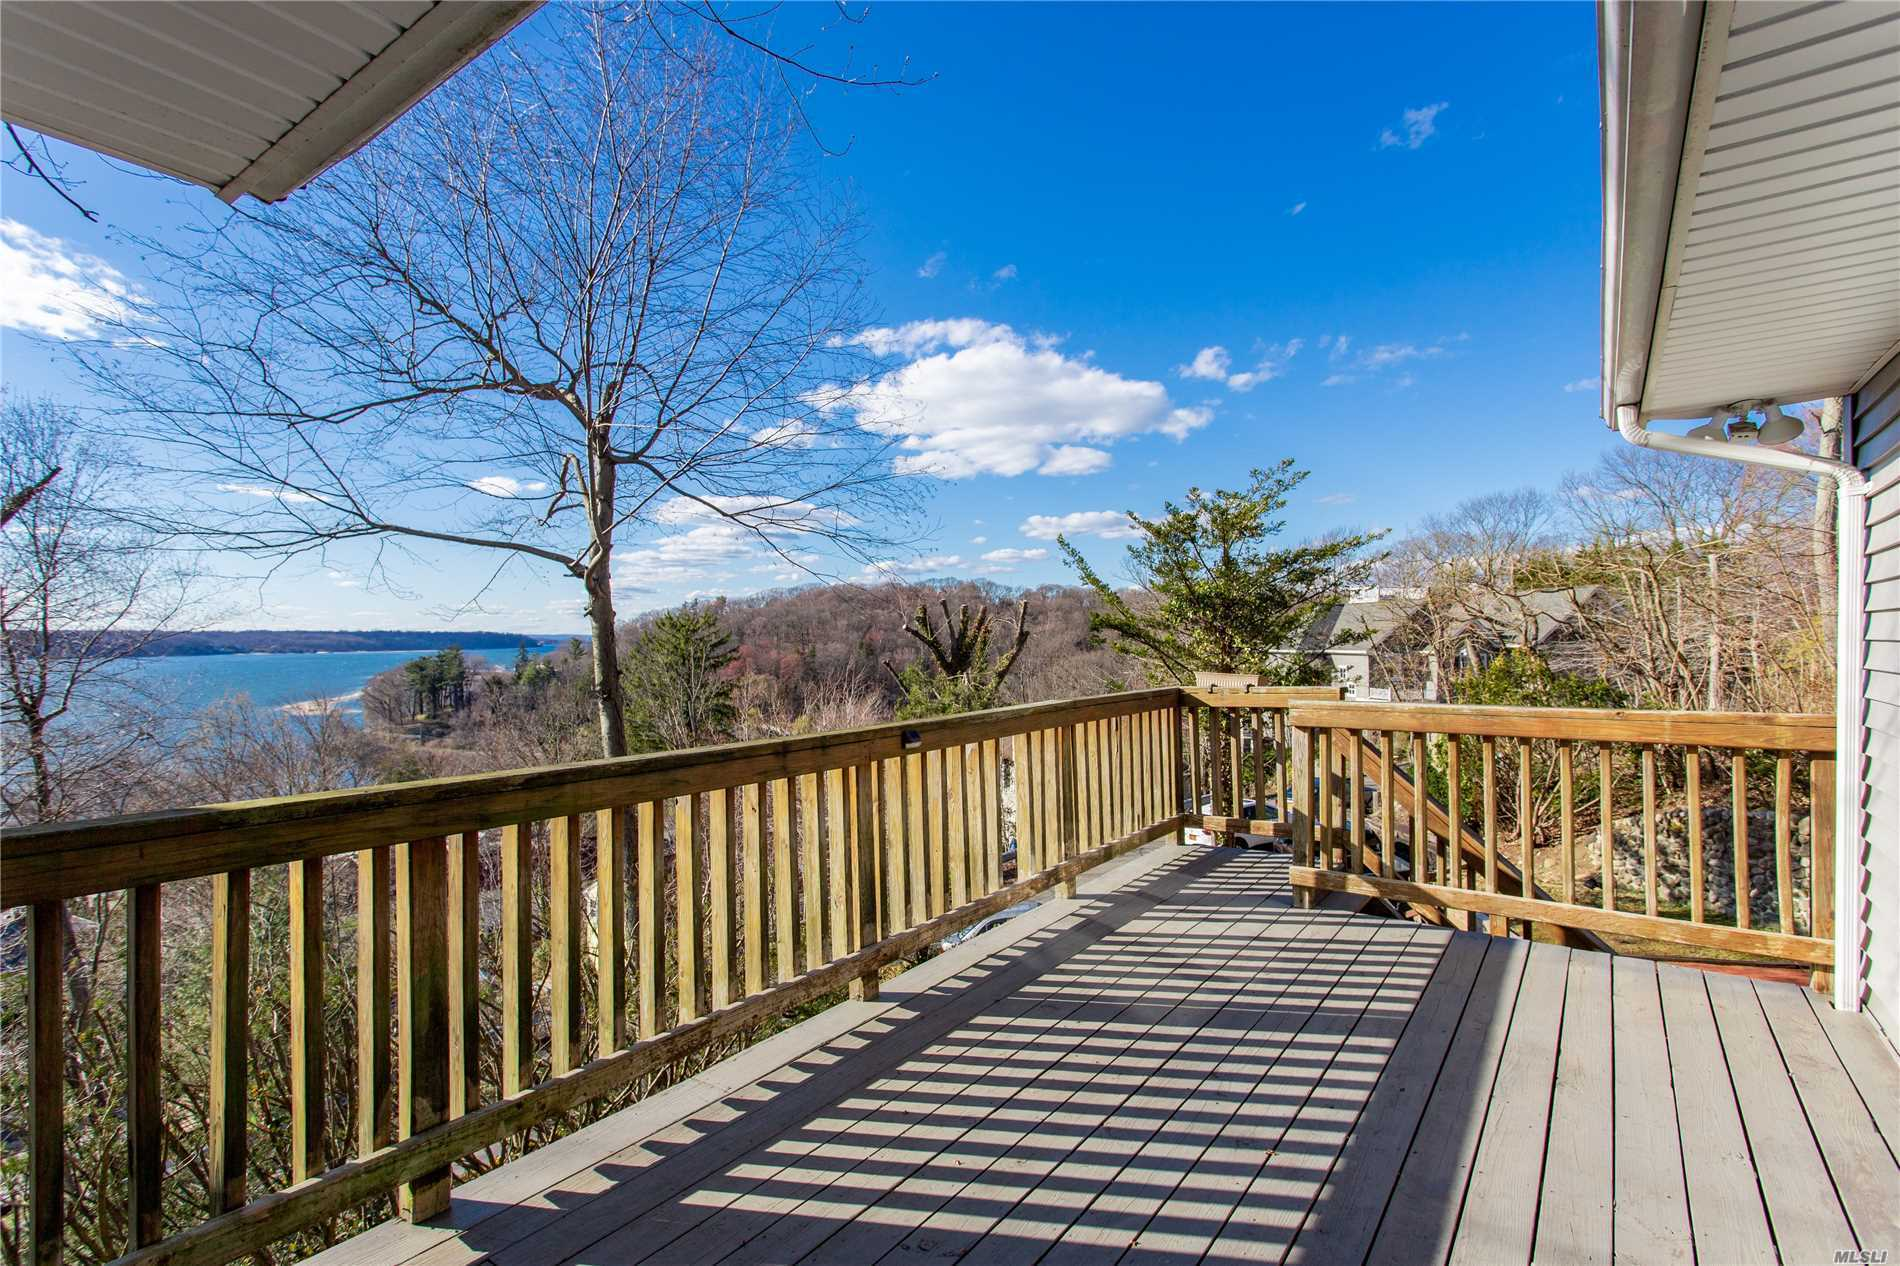 Seaside authentic mid-century cottage enjoys YEAR ROUND WESTERN WATER VIEWS, nightly sunsets, cathedral ceiling in LR w fireplace, hardwood floors and close to town, beach, railroad.A Diamond in the Rough..Home sold as is...Eagle Dock Beach and Cold Spring Harbor schools nearby.